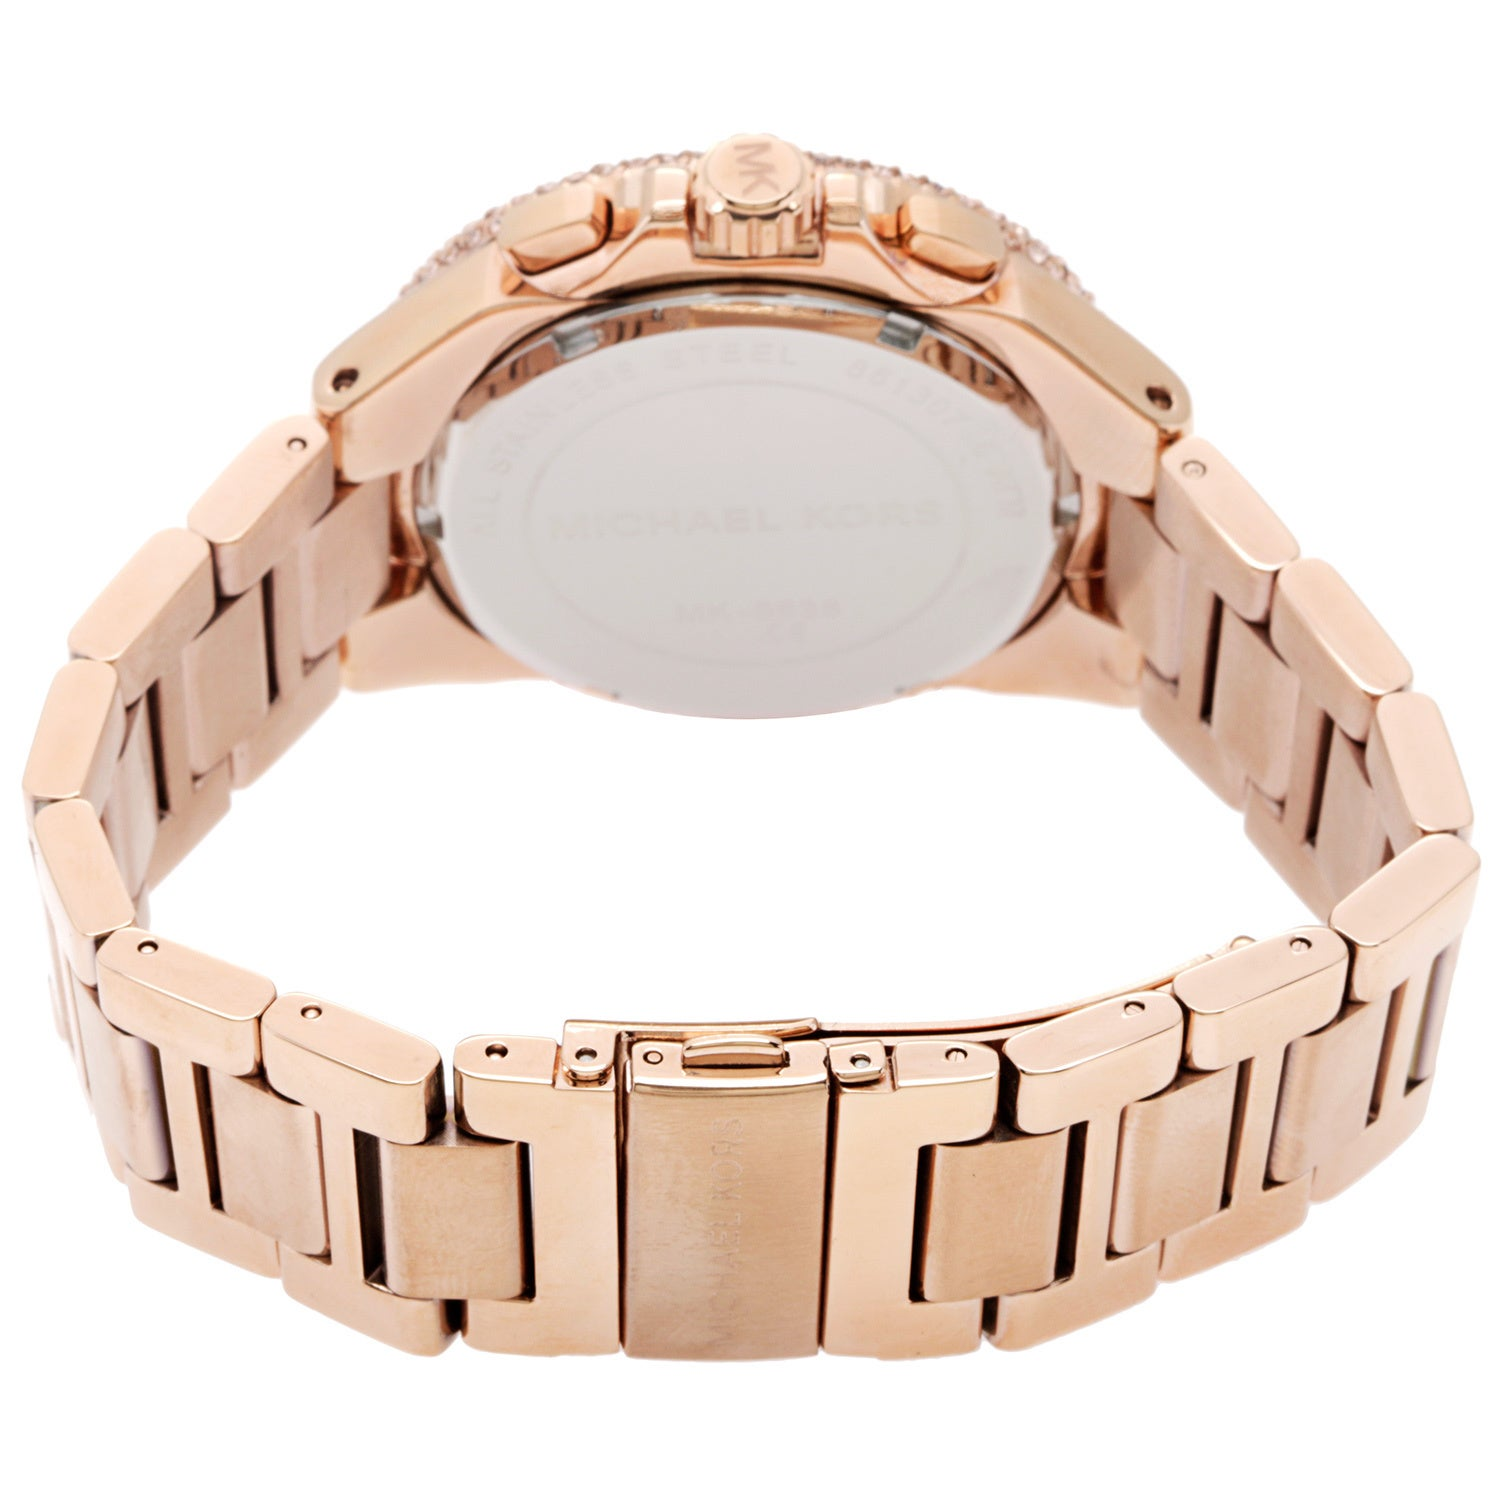 609e377f999d Shop Michael Kors Women s MK5636 Rose Gold-Tone Camille Watch - Free  Shipping Today - Overstock - 7304782